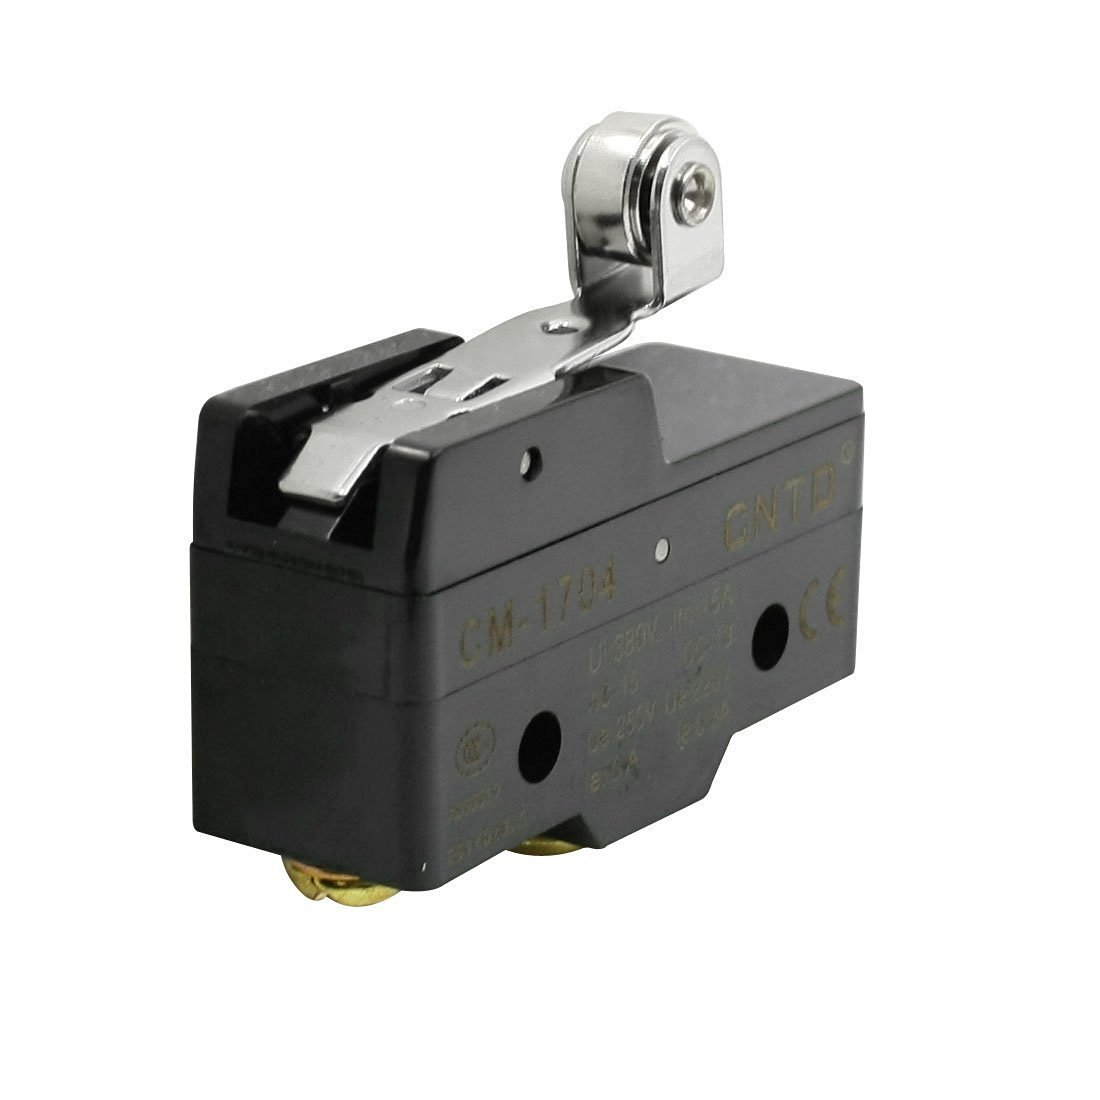 Baomain CM-1704 SPDT Momentary Roller Hinge Lever Arm Limit Switch Micro Switch